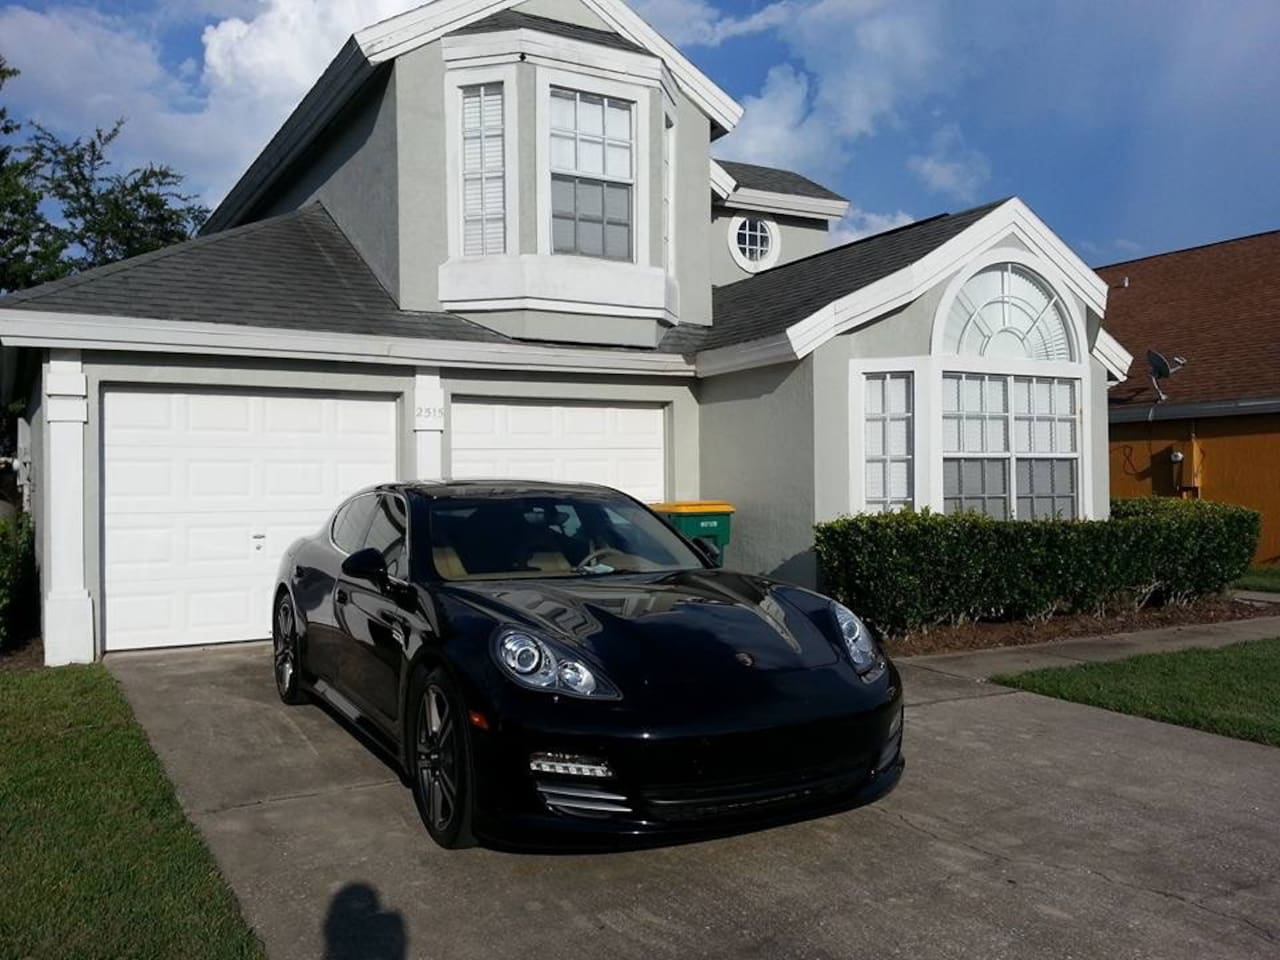 Florida Fun Vacation Home (Porsche Panamera 4S - not included)